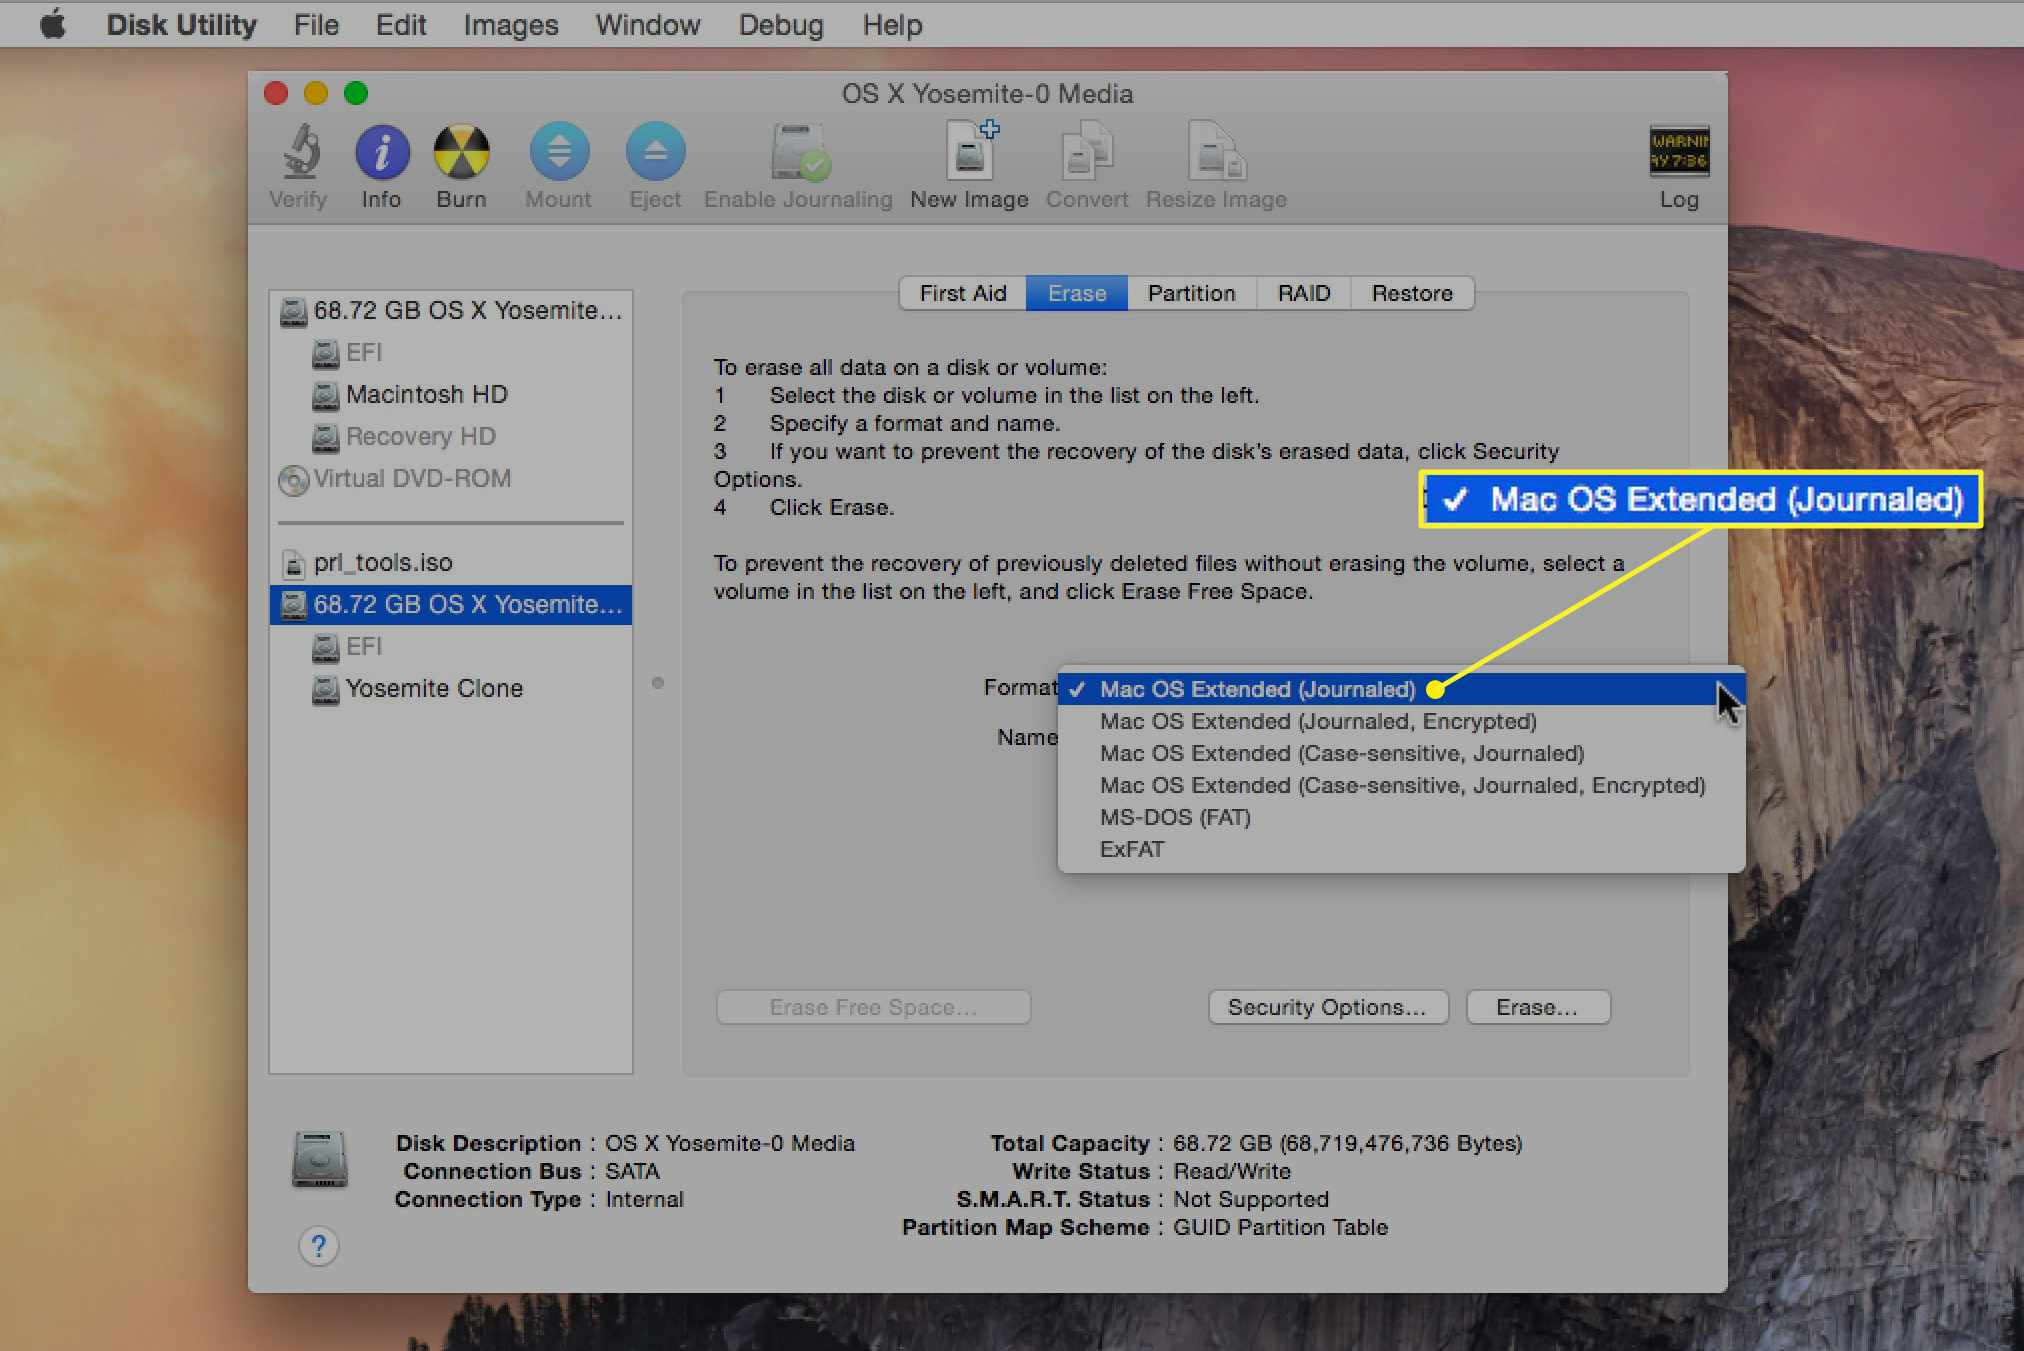 Disk Utility with Mac OS Extended (Journaled) selected as the format